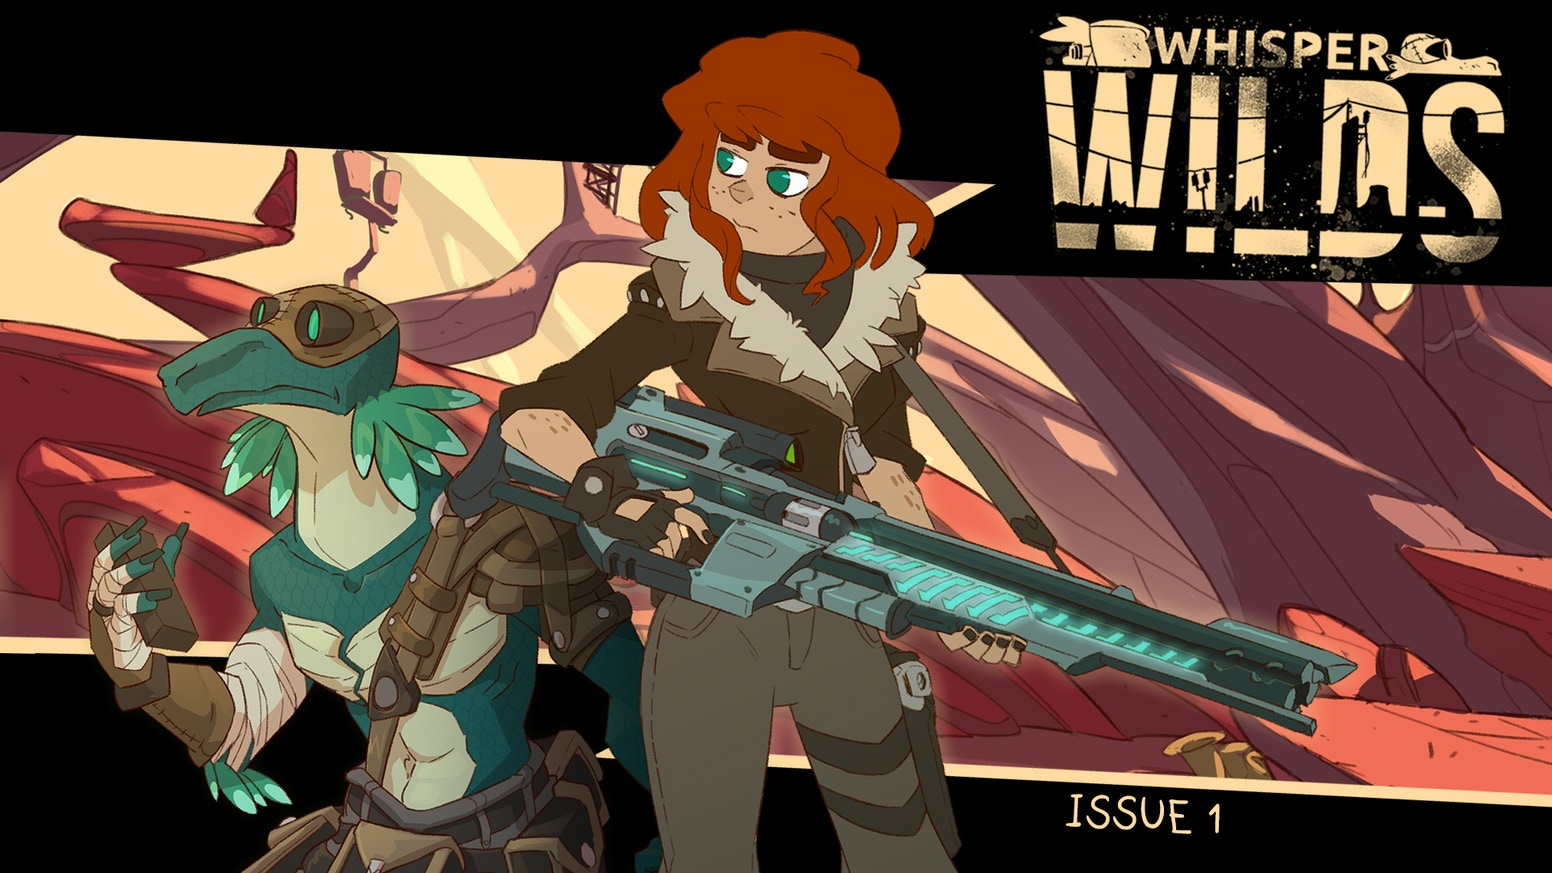 An Australian sharpshooter and a reptilian genius fight to close inter-dimensional gateways in a brand new comic series.